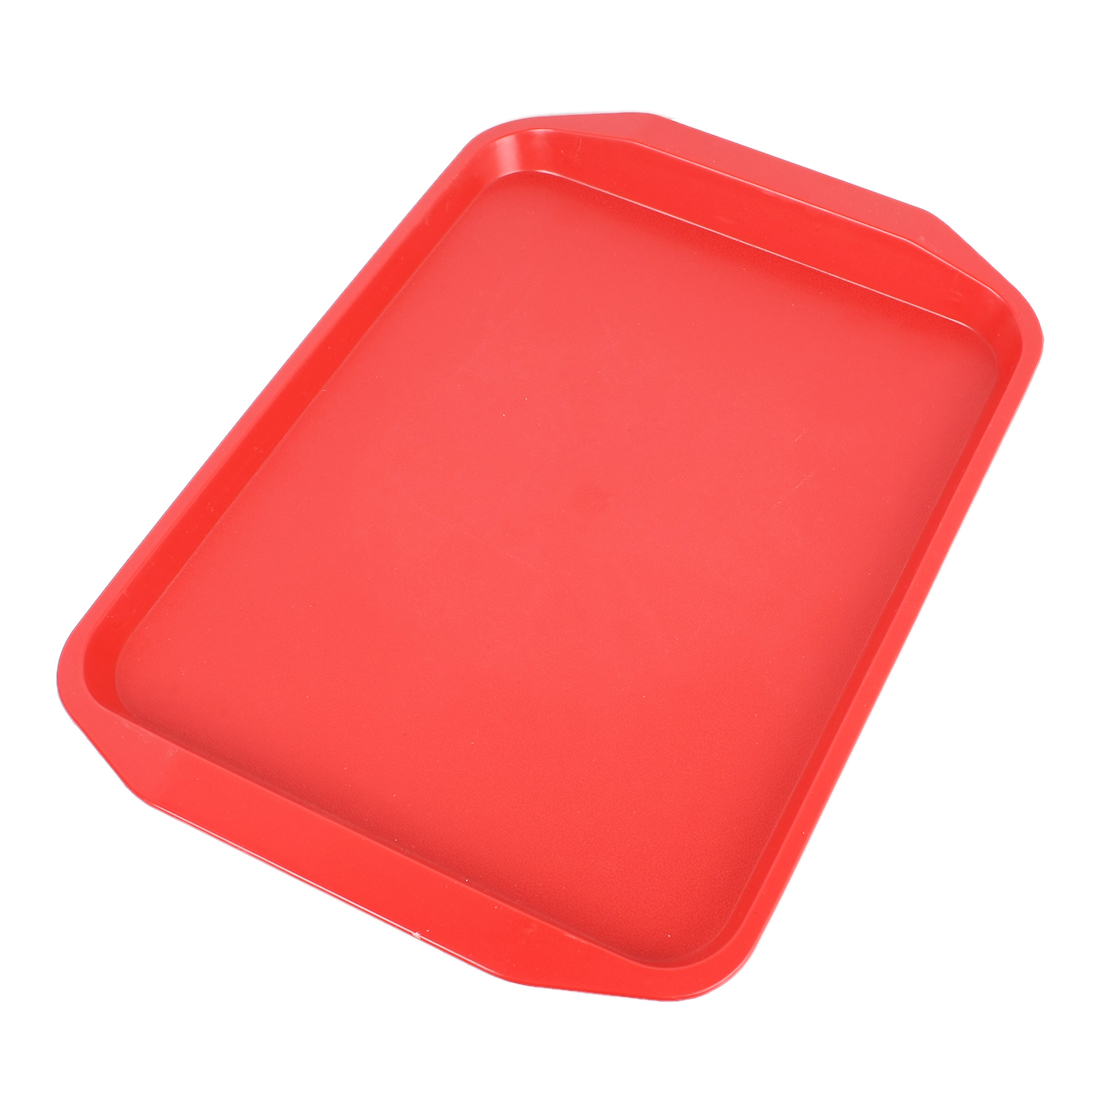 uxcell plastic rectangle designed dinner food court serving tray red serving traychina